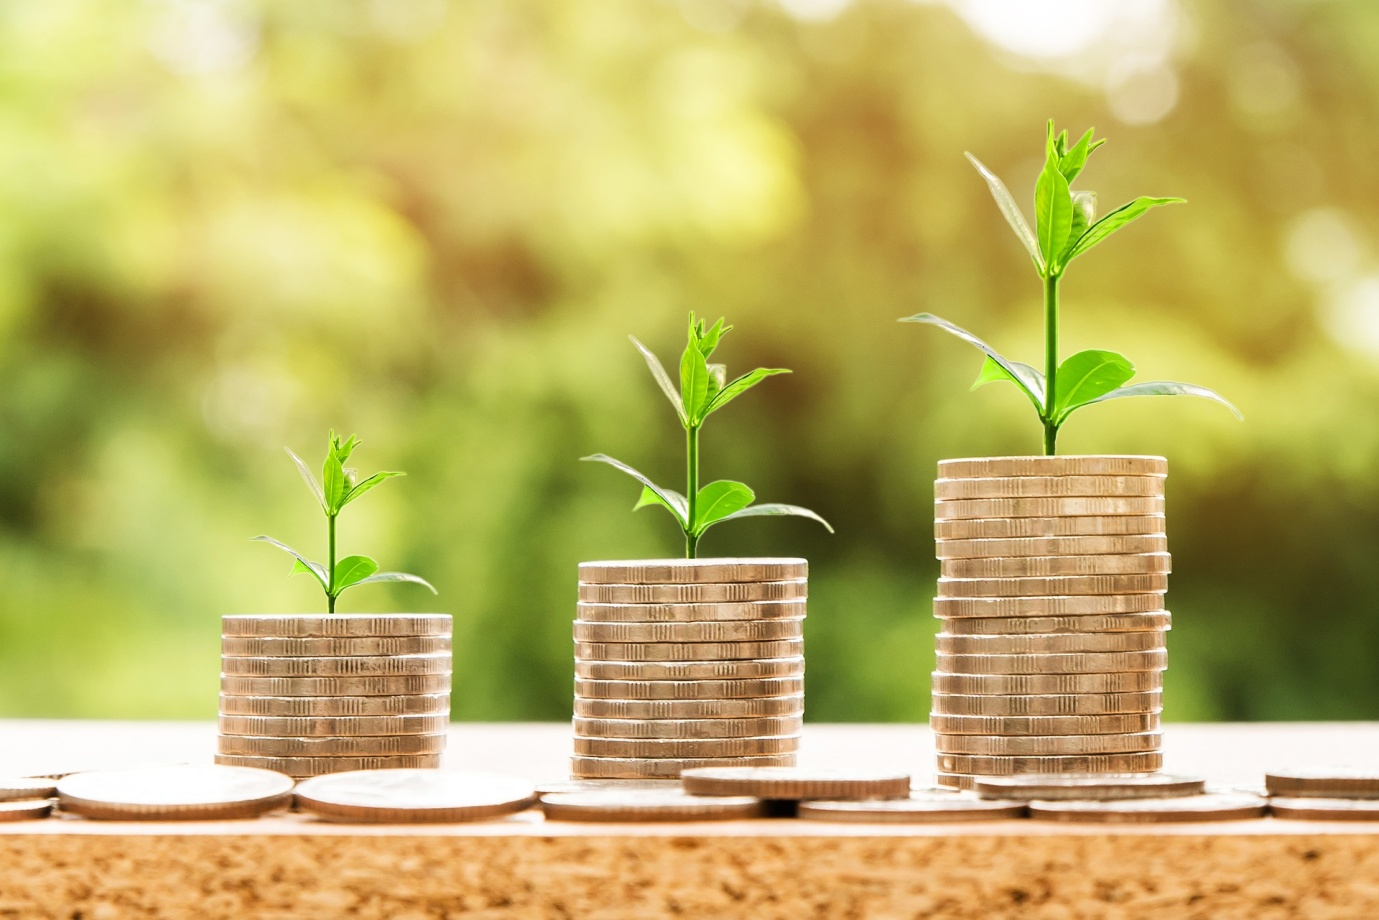 4 Tips On How To Determine The Best Mutual Fund House To Invest In